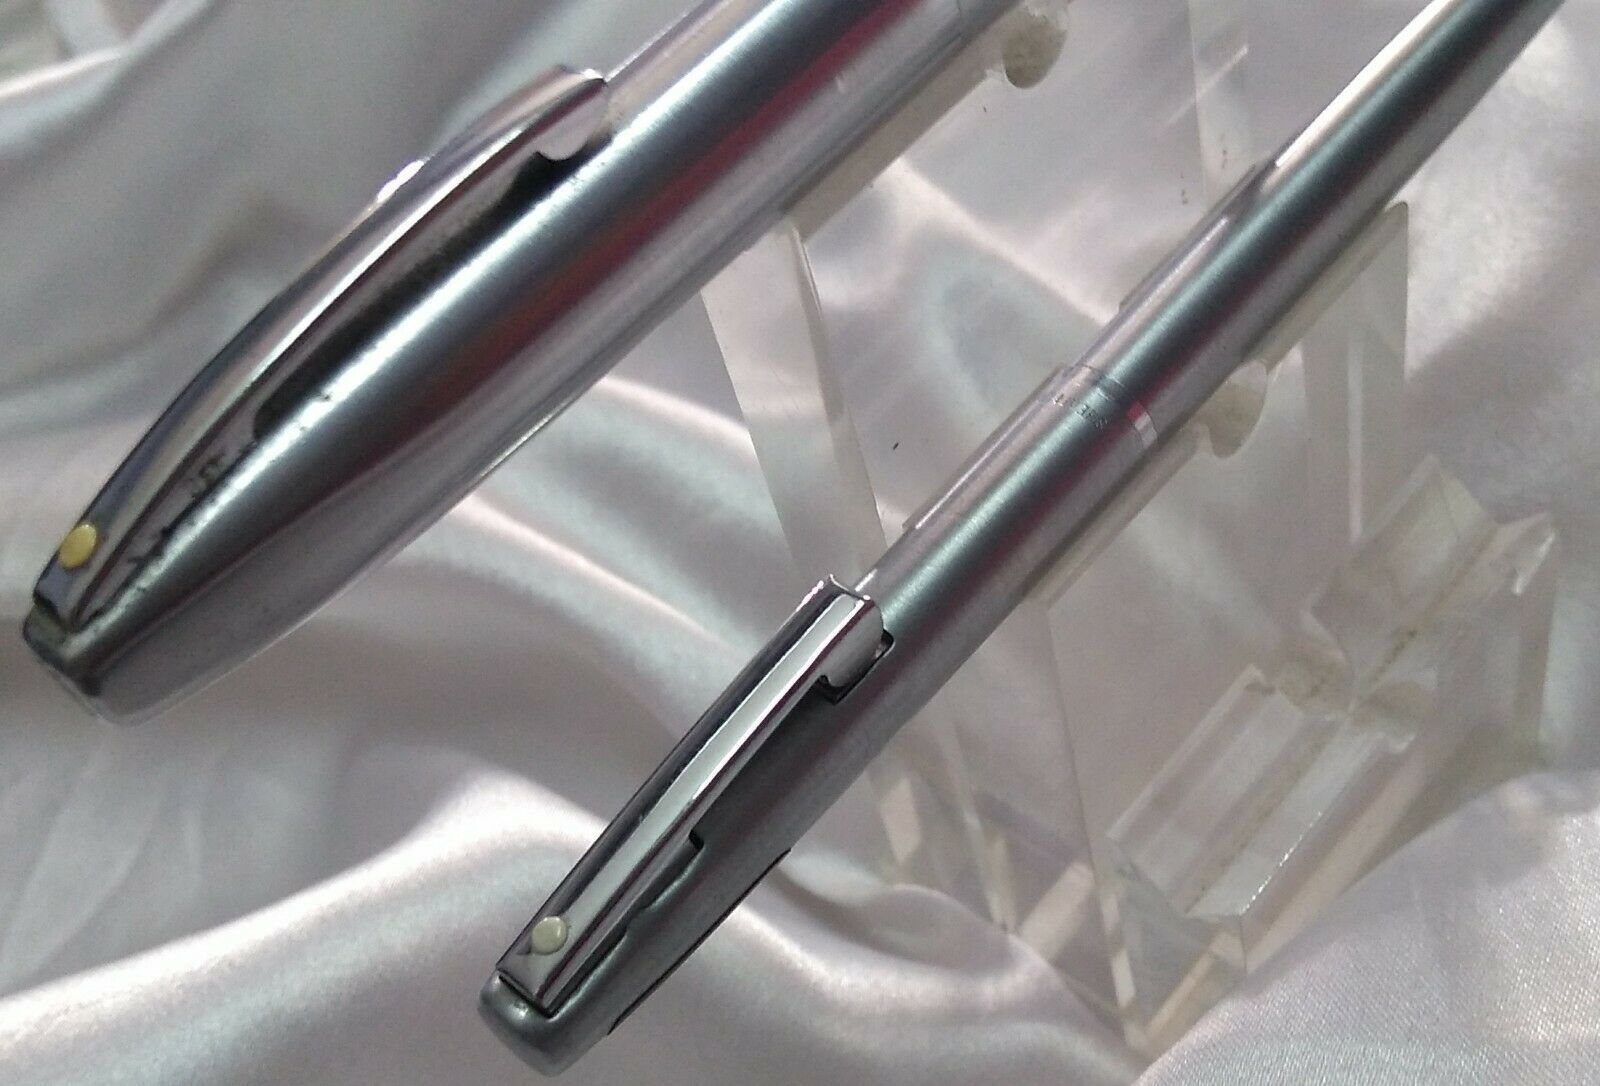 Sheaffer imperial stainless steel fountain and ball pen set USA made